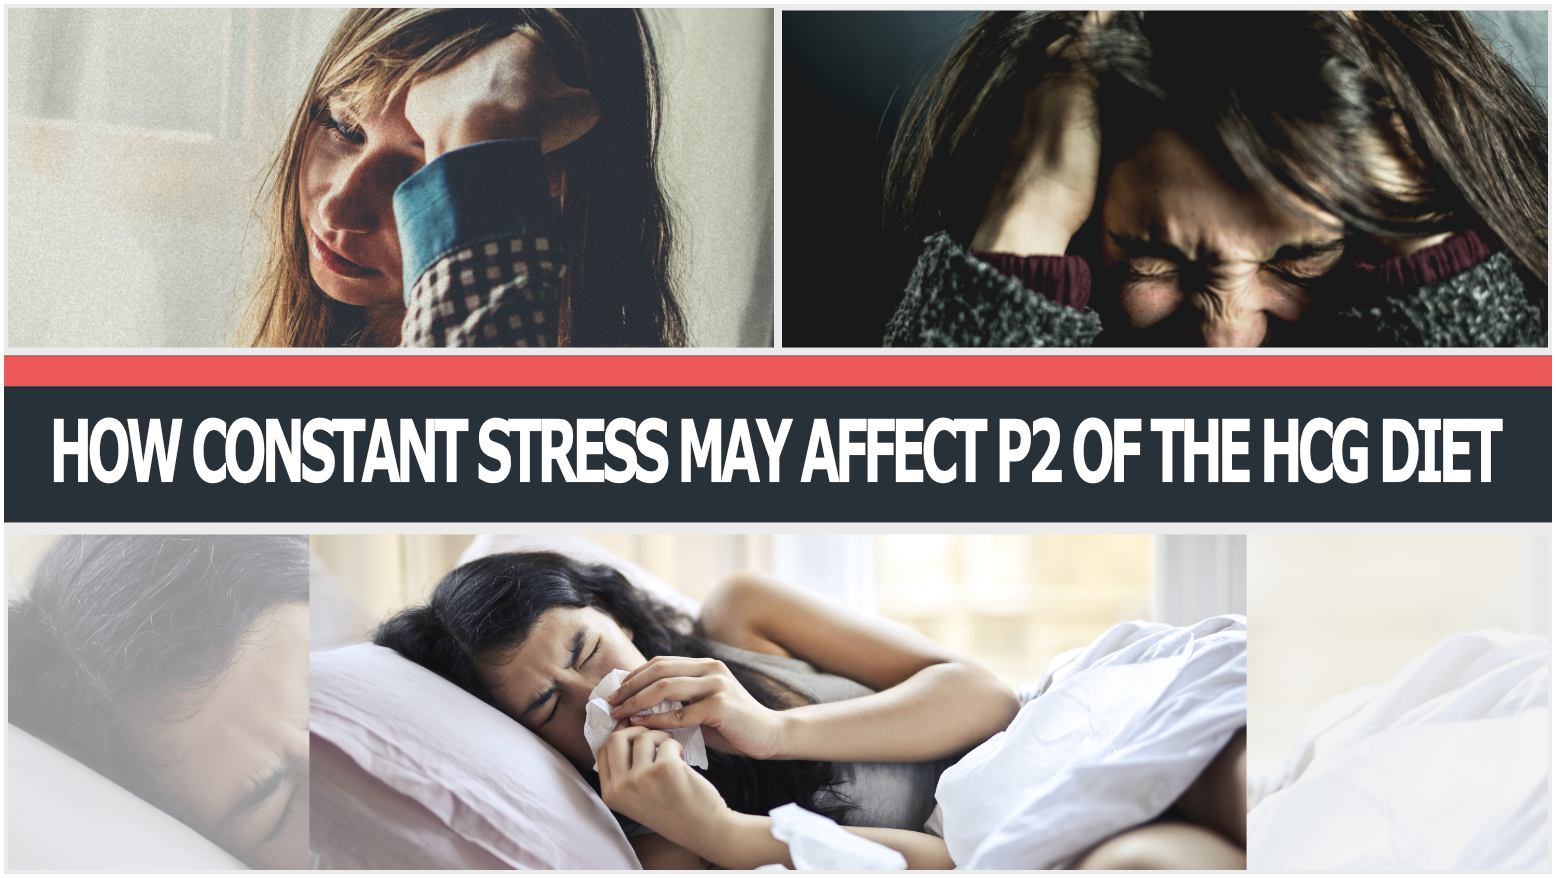 HOW CONSTANT STRESS MAY AFFECT P2 OF THE HCG DIET